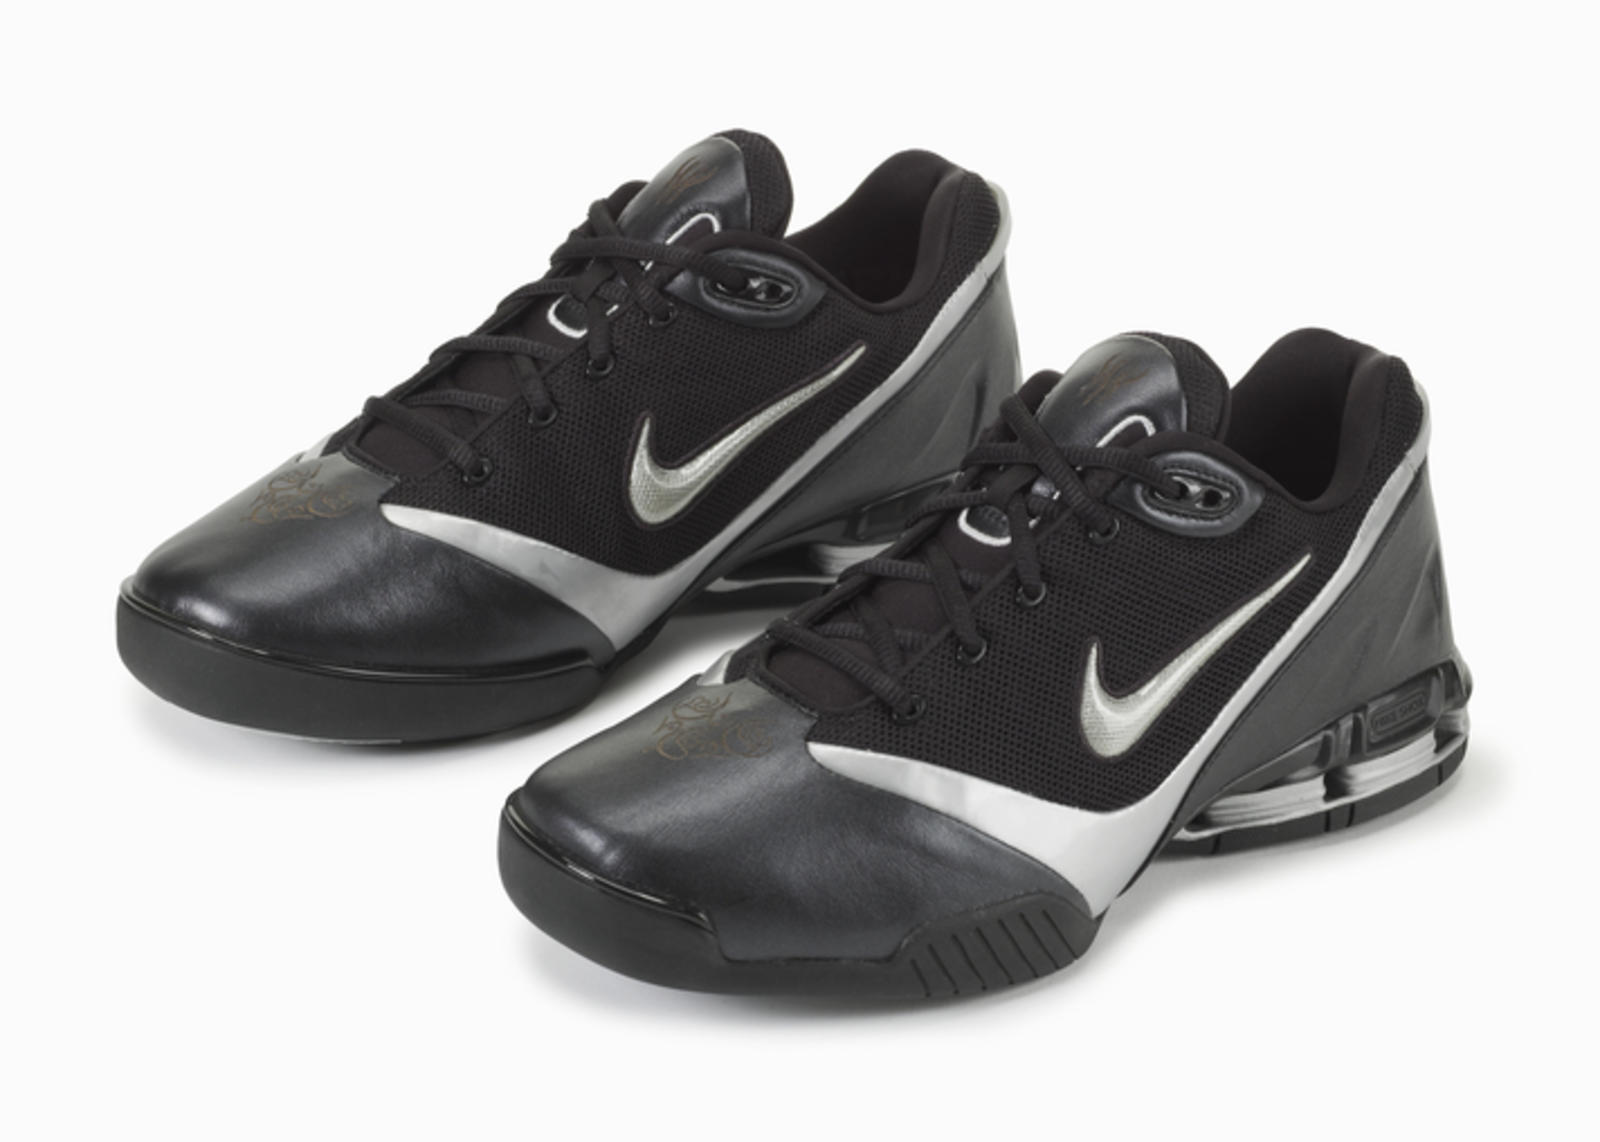 nike shox glamour 2004 serena williams